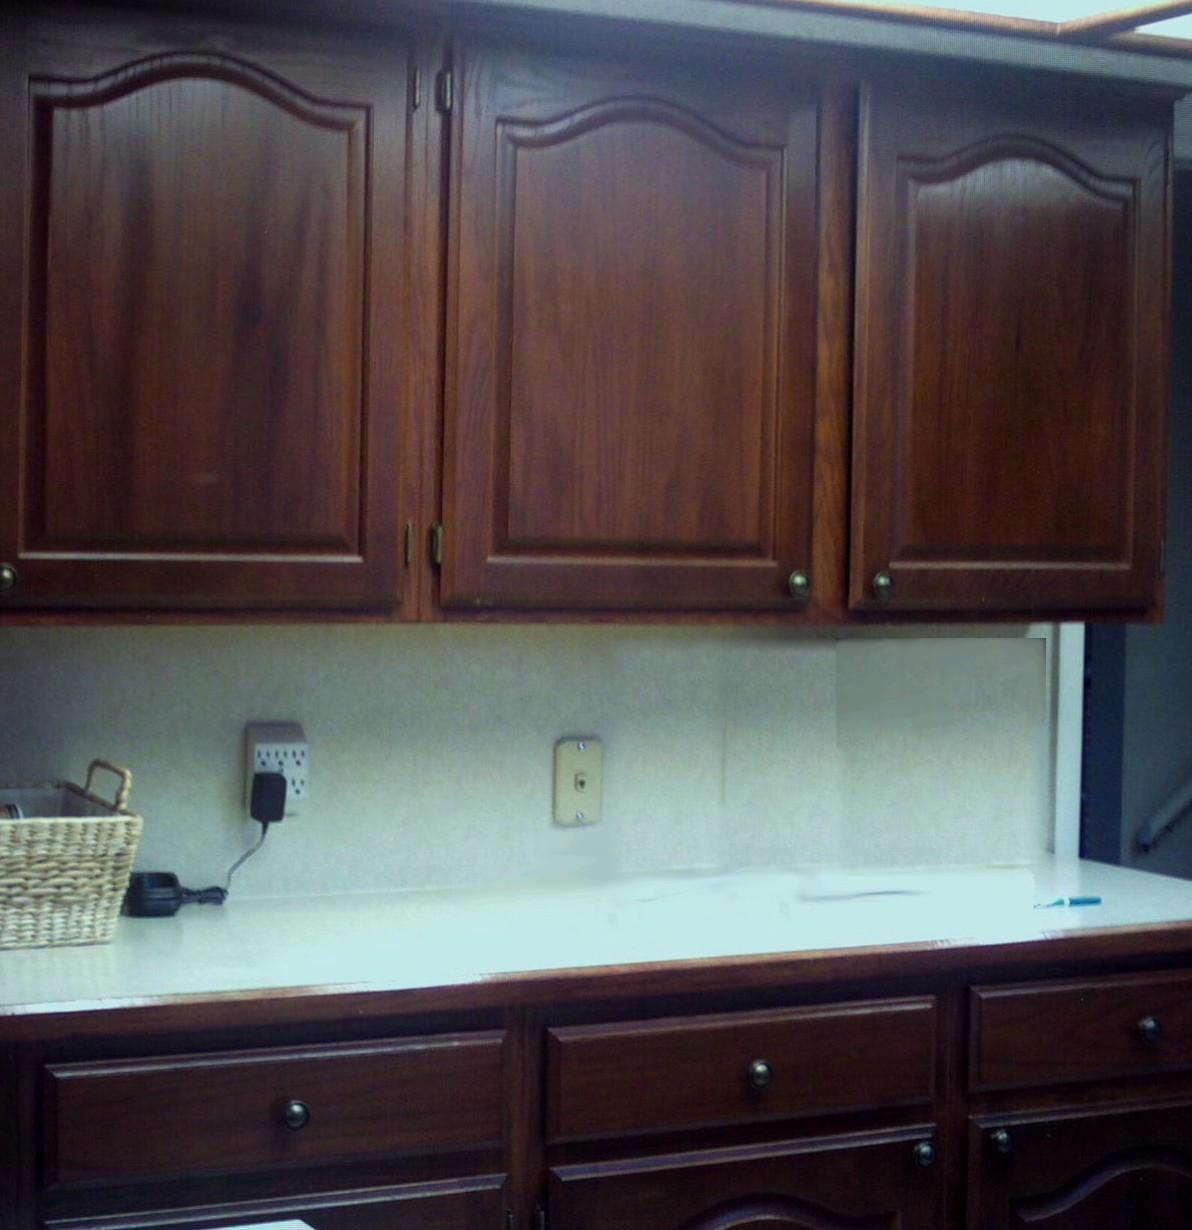 dark cabinet refinishing refinish kitchen cabinets Kitchen cabinets and cupboards refinished in cherry wood color